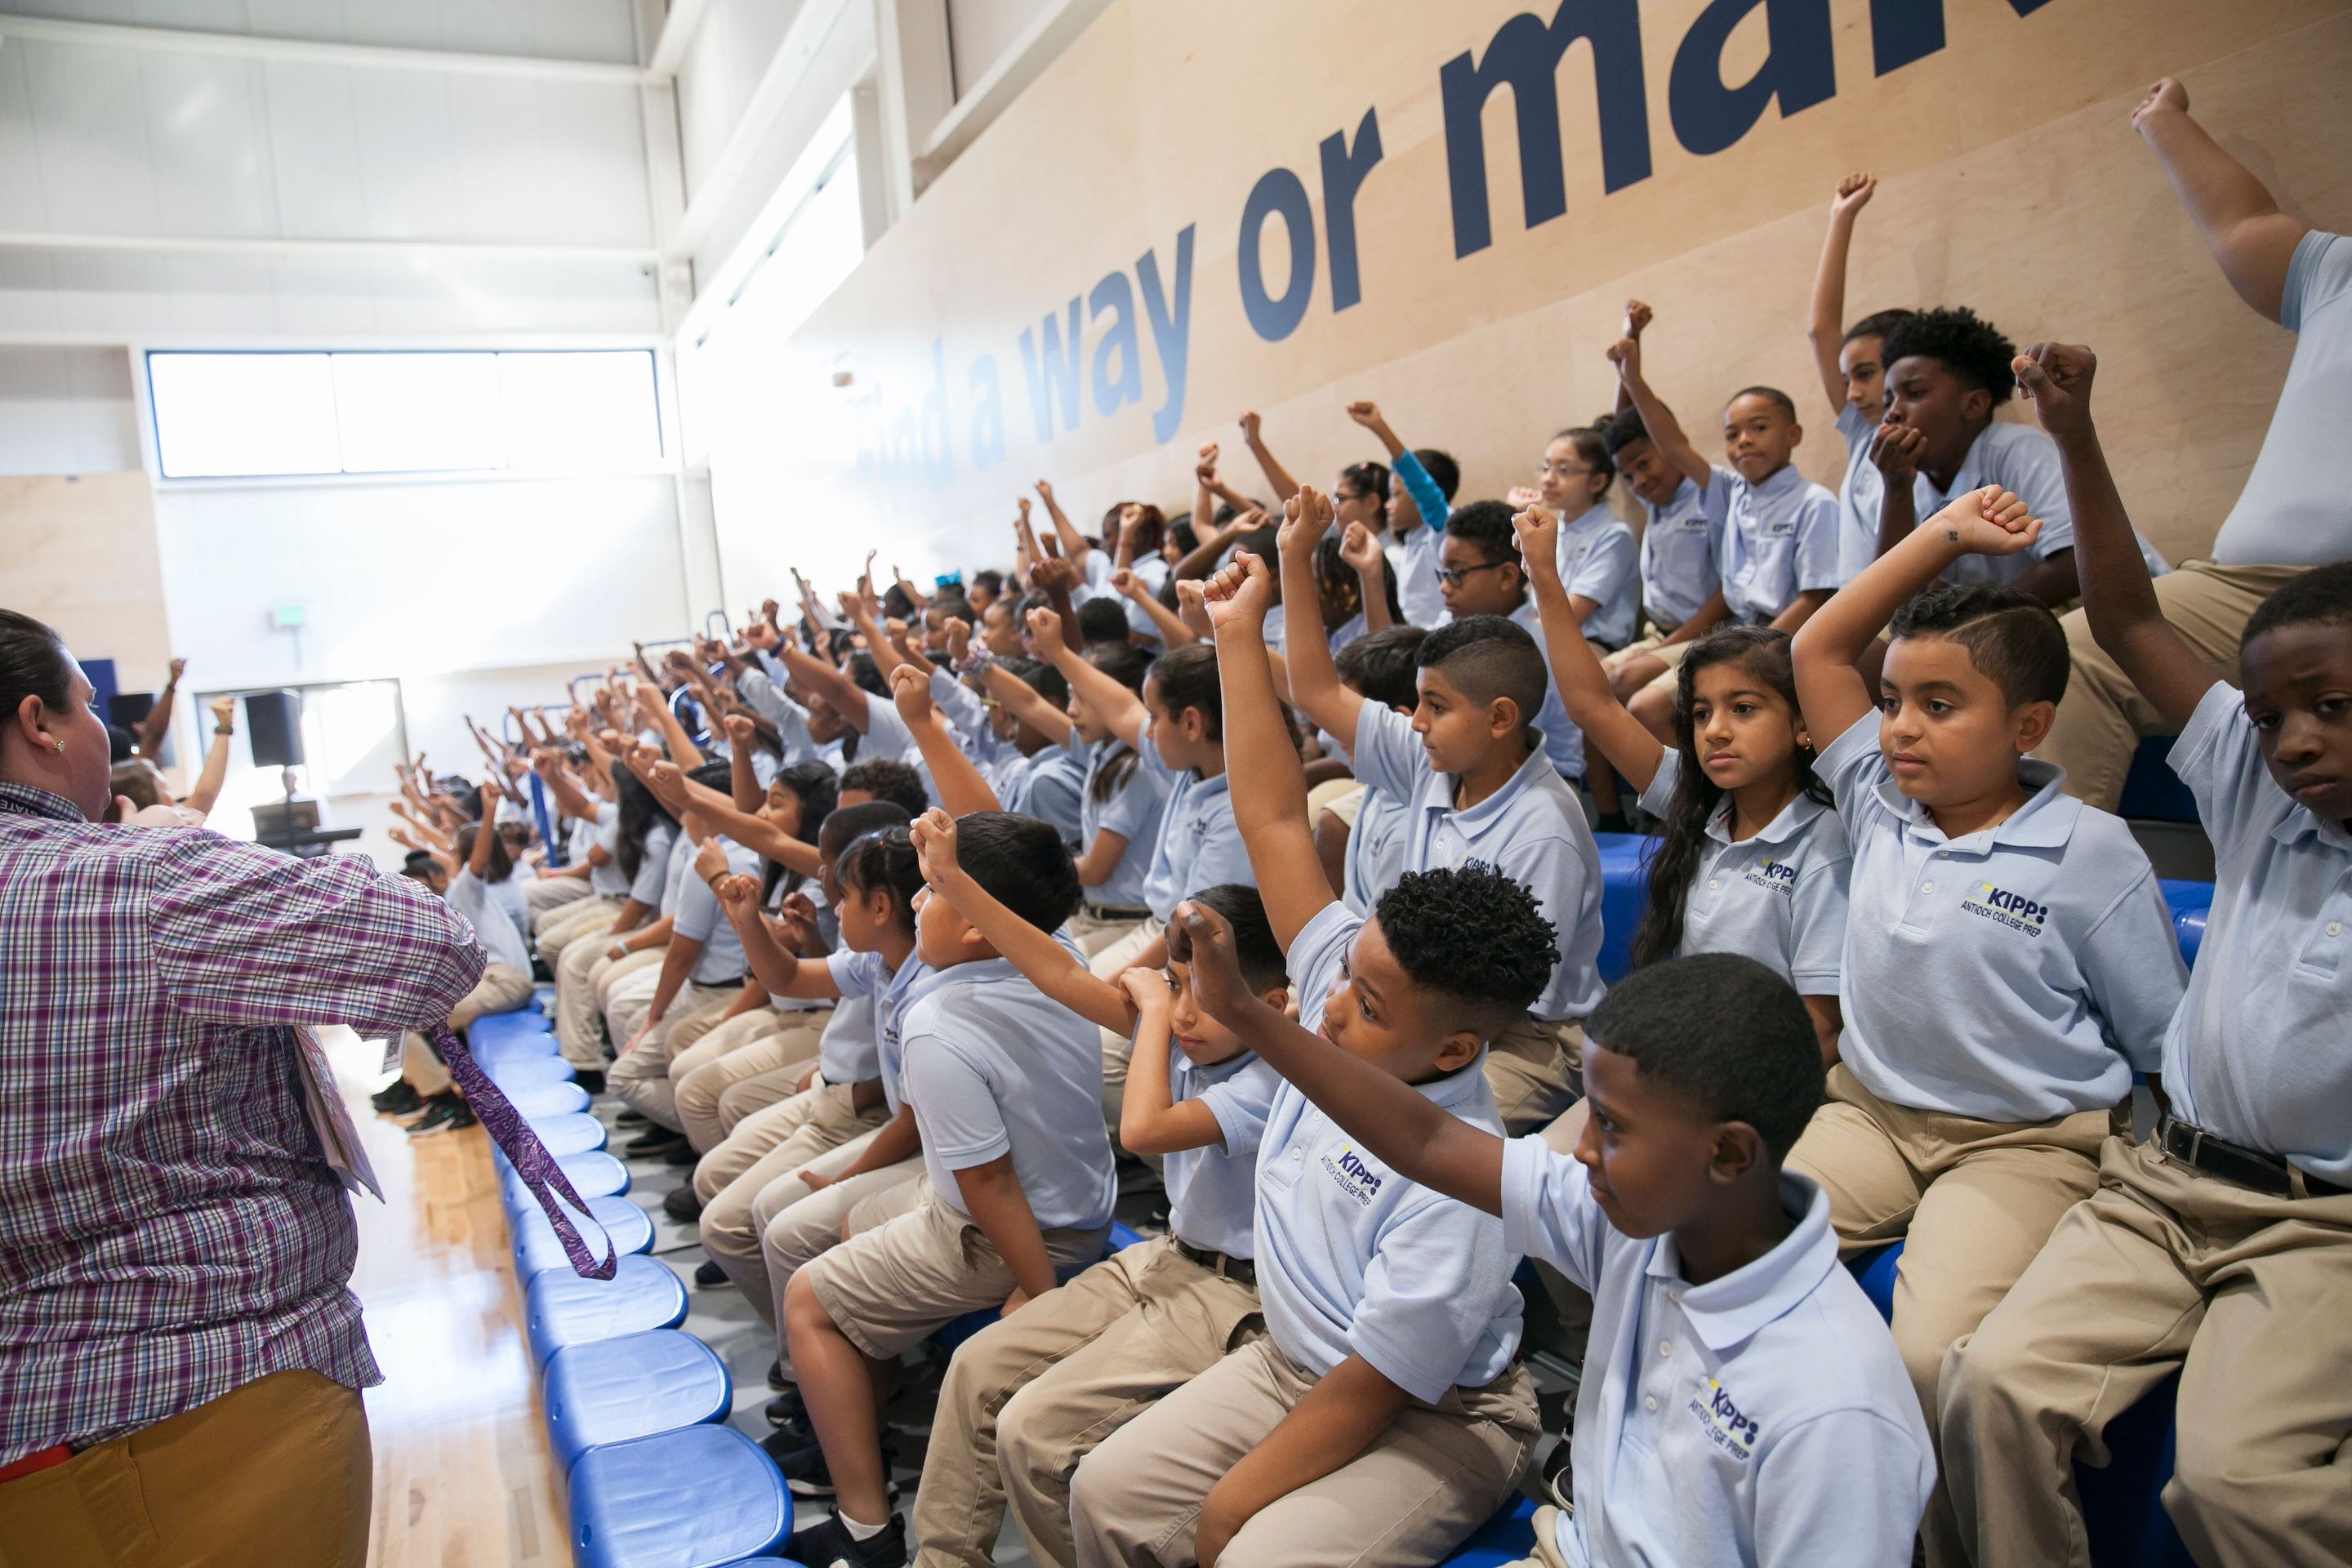 A large group of students, wearing light blue shirts and khaki pants, raise their hands seated on bleachers while educators stand in front of them.